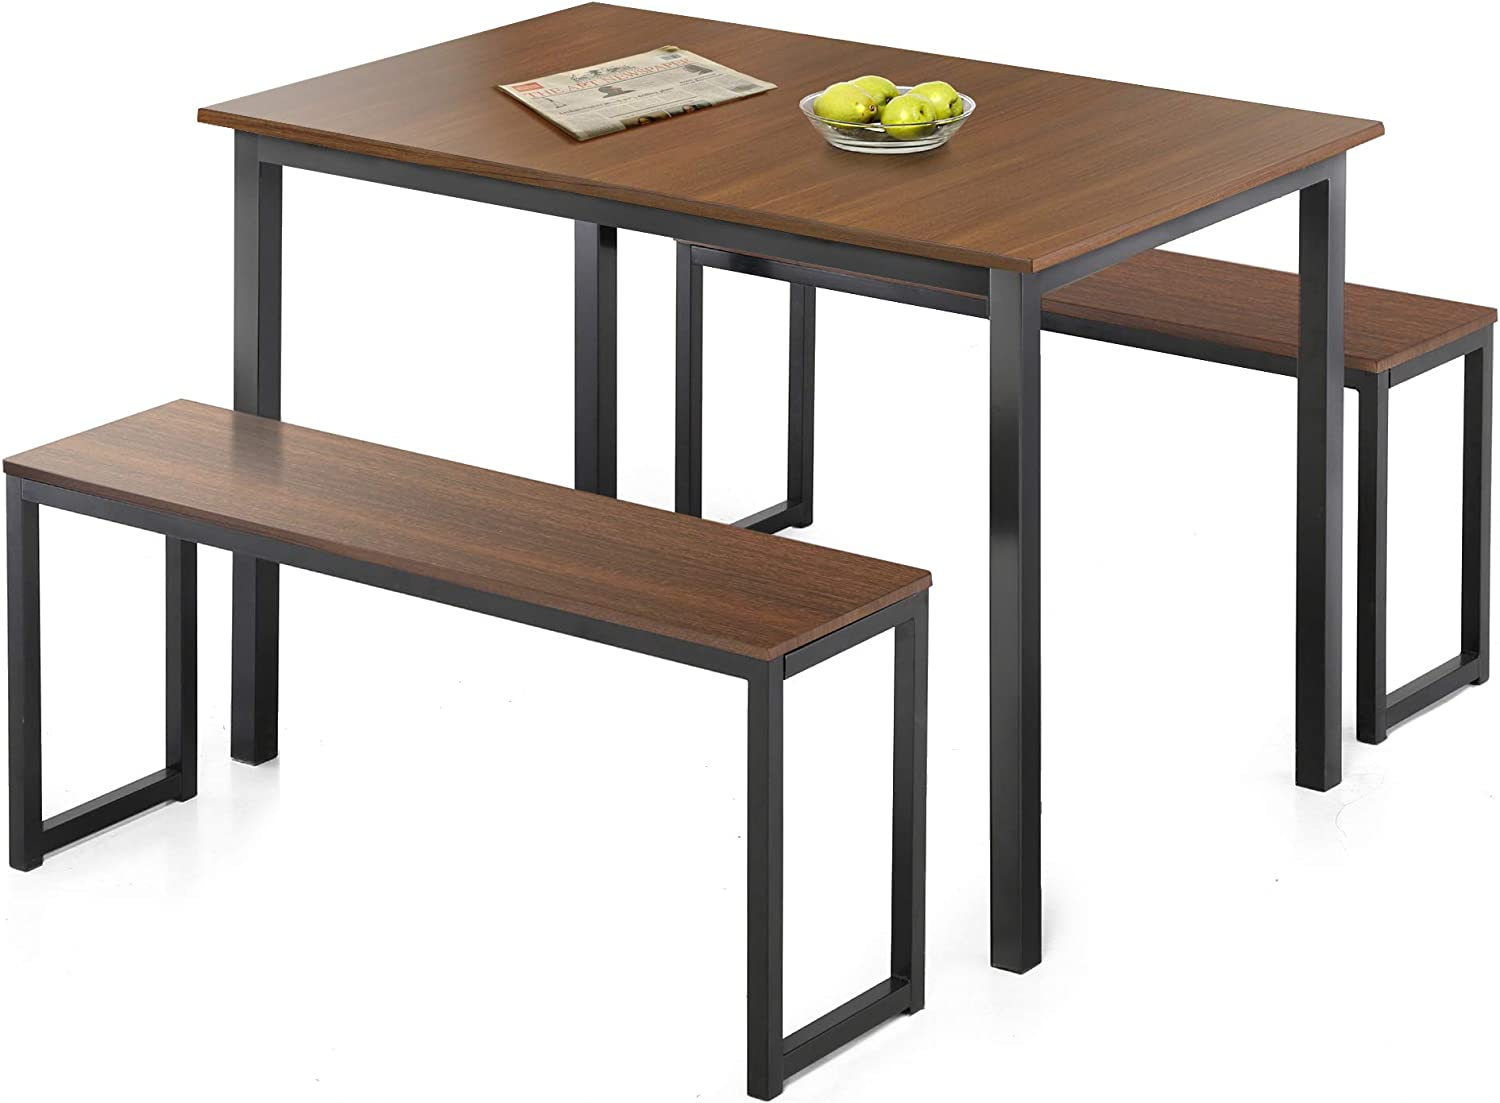 Furniture Gheda 3 Pieces Dining Table Set Modern Kitchen Table Set With 2 Benches Wood Table Top And Metal Frame For Home Apartment Breakfast Nook Small Space Space Saving Design Dining Room Furniture Black Home Kitchen Smkbinaputracihampelas Sch Id